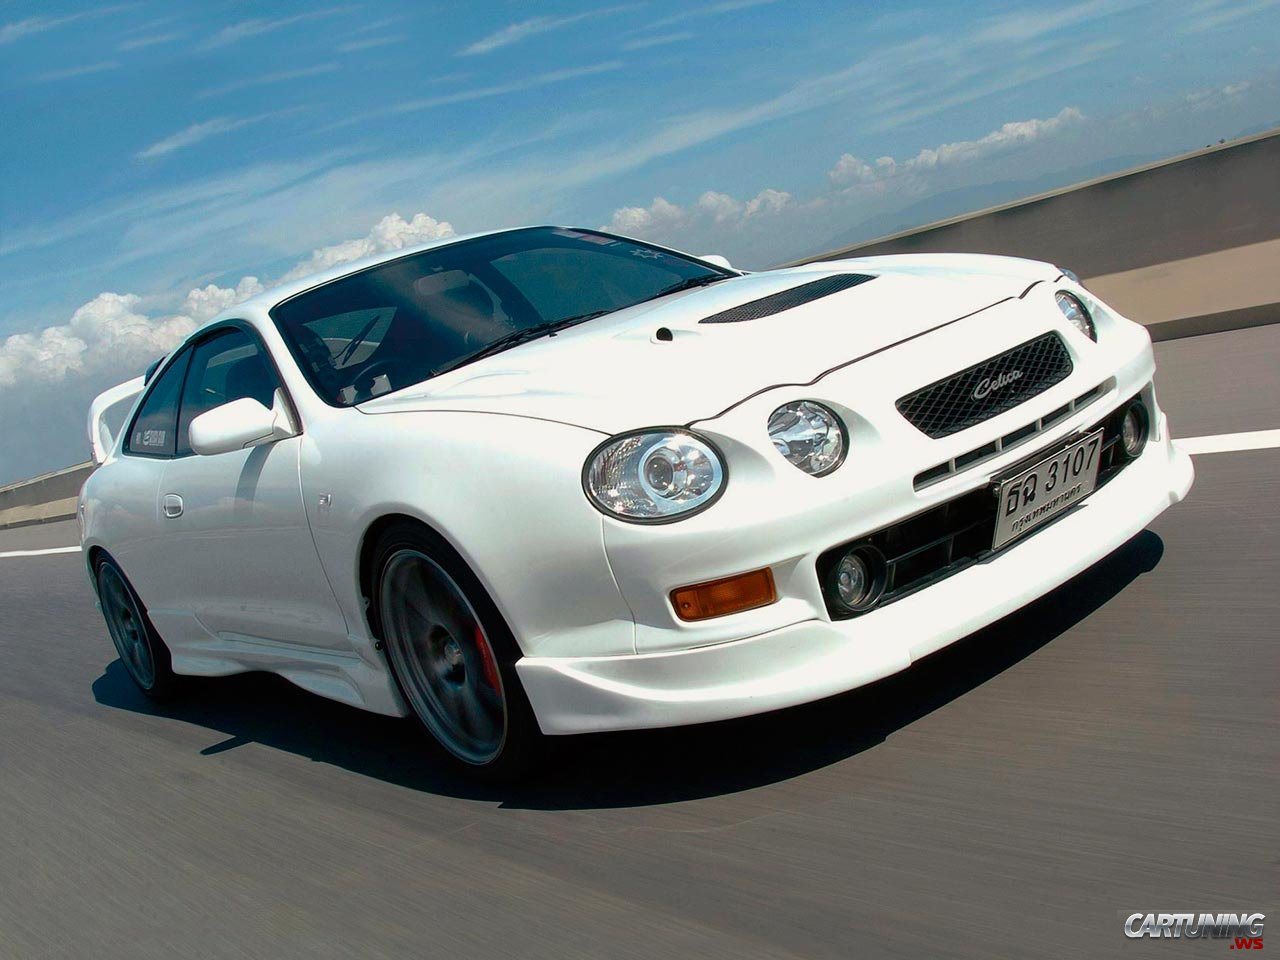 Tuning Toyota Celica St205 187 Cartuning Best Car Tuning